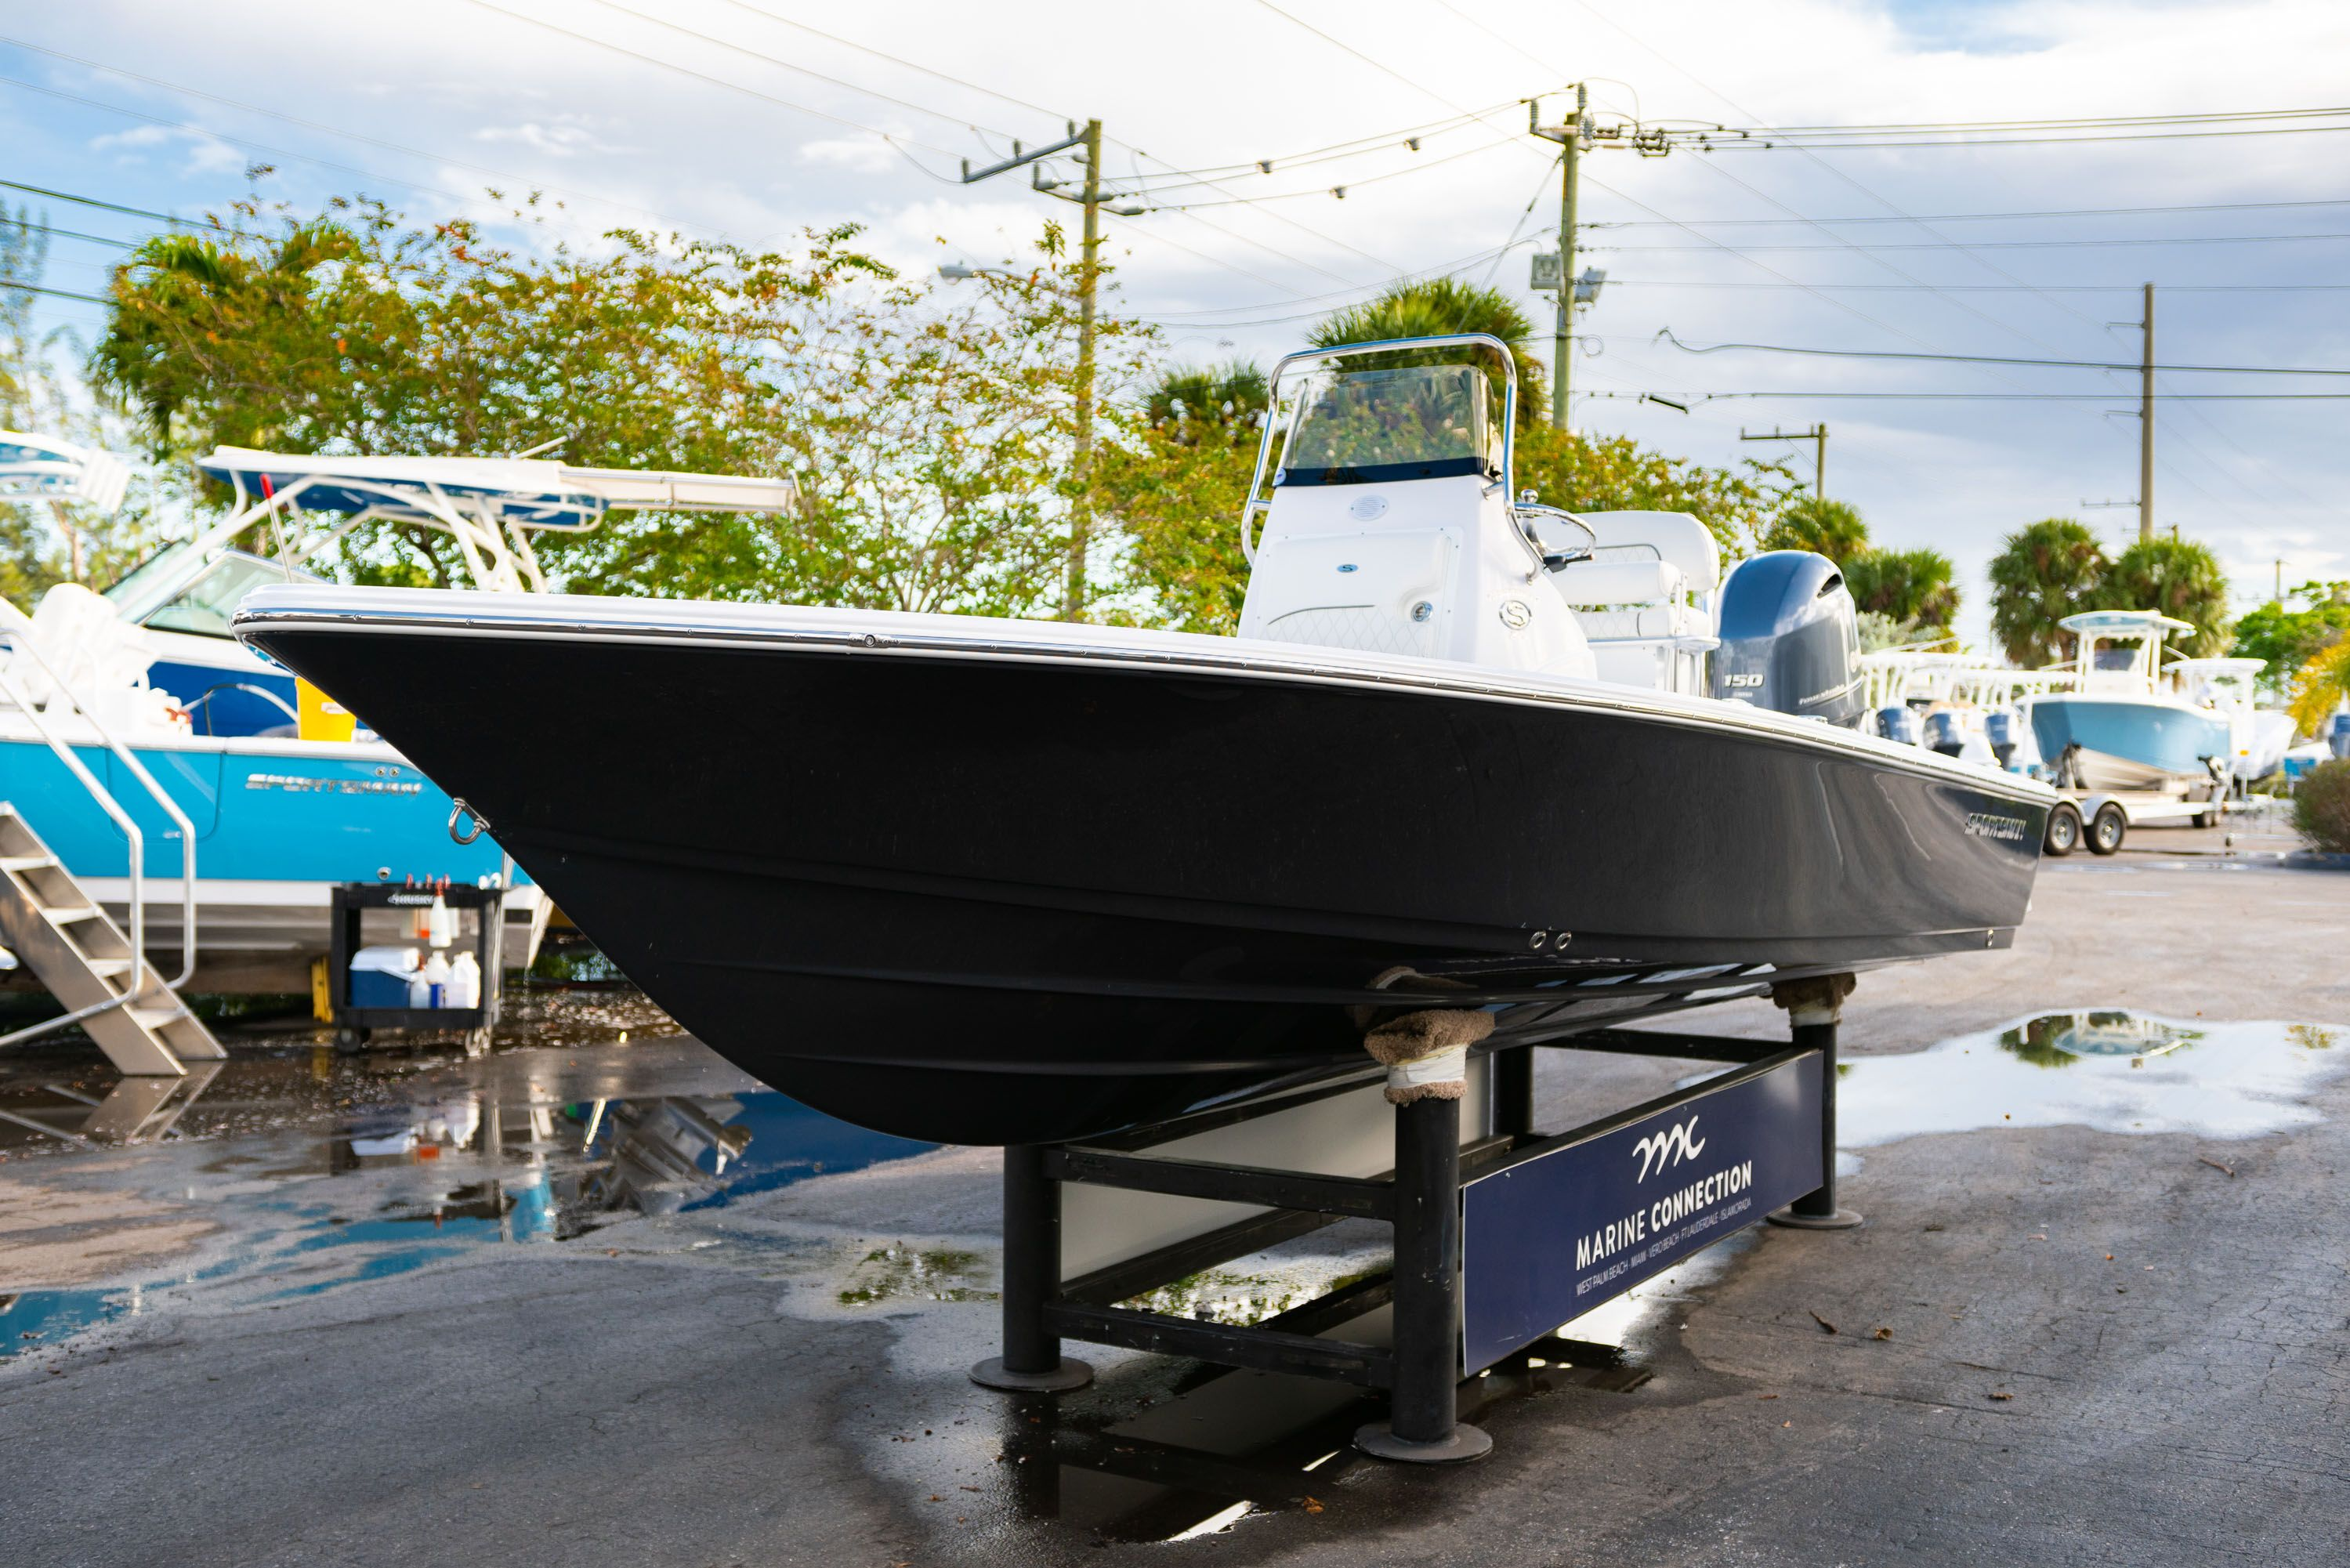 Thumbnail 3 for New 2020 Sportsman Tournament 214 Bay Boat boat for sale in West Palm Beach, FL